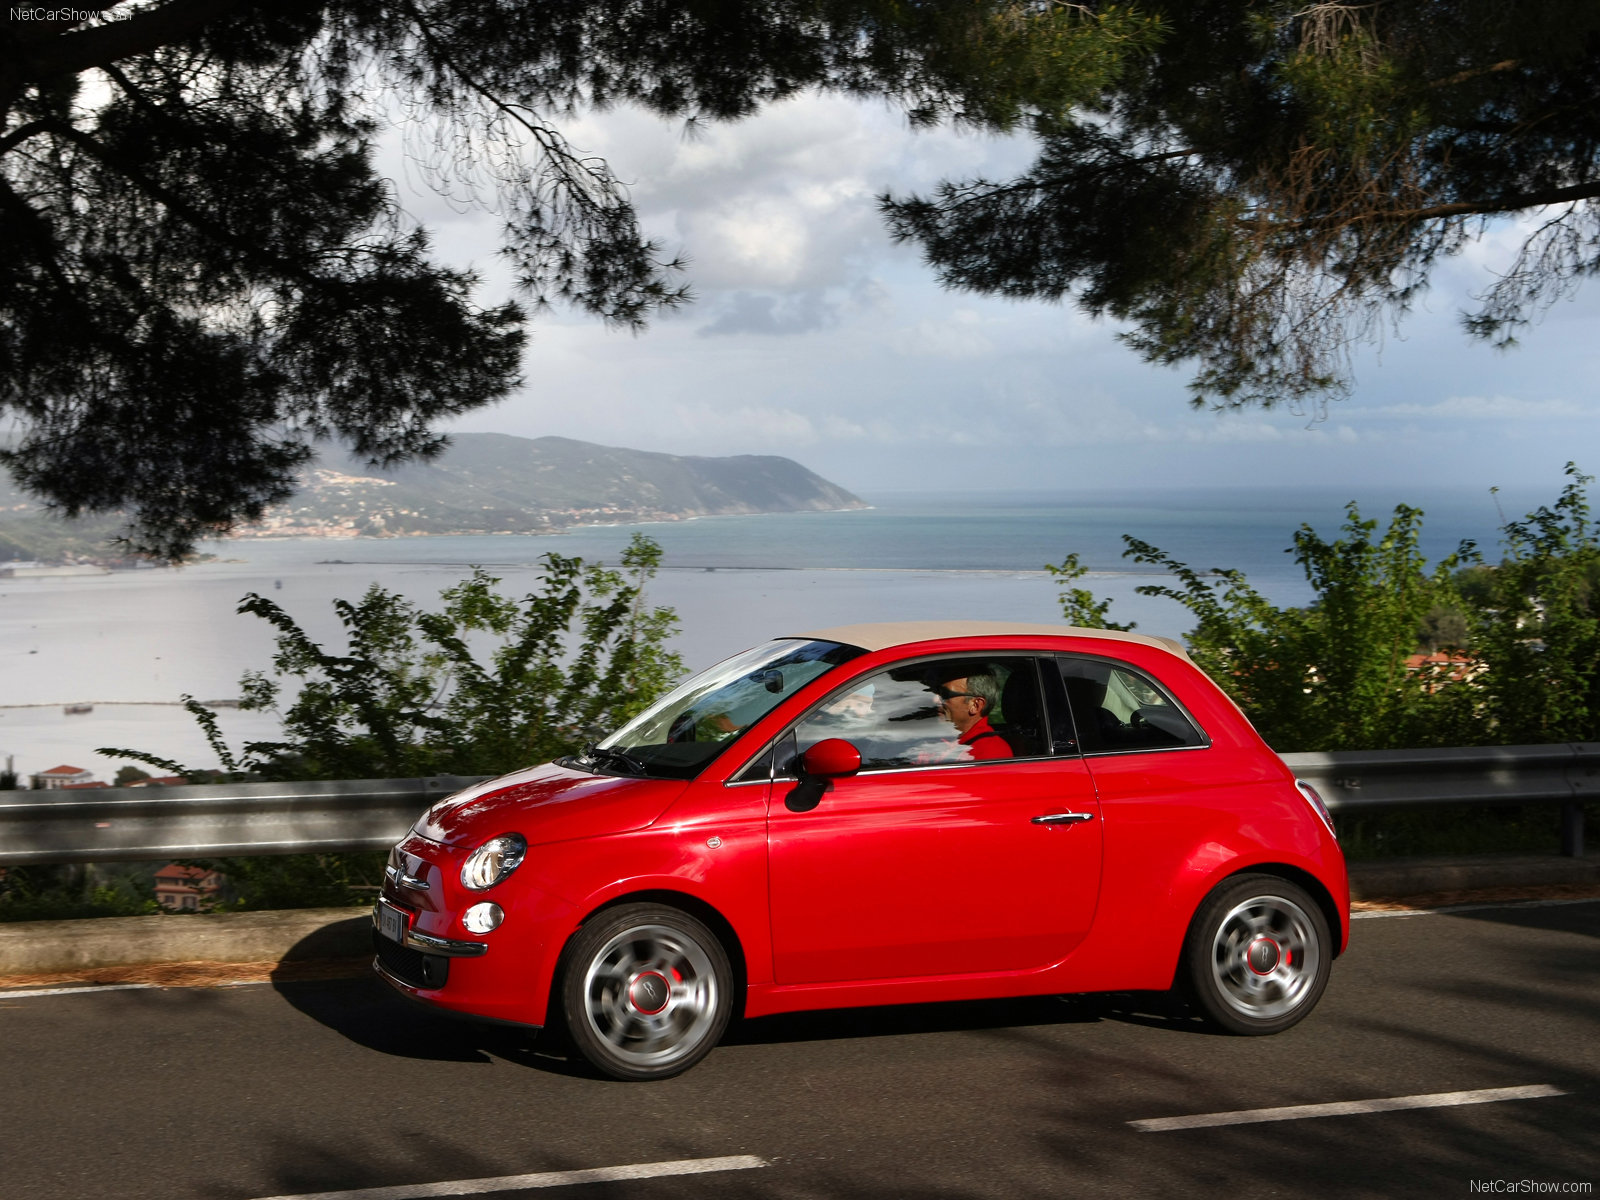 You can vote for this Fiat 500C photo